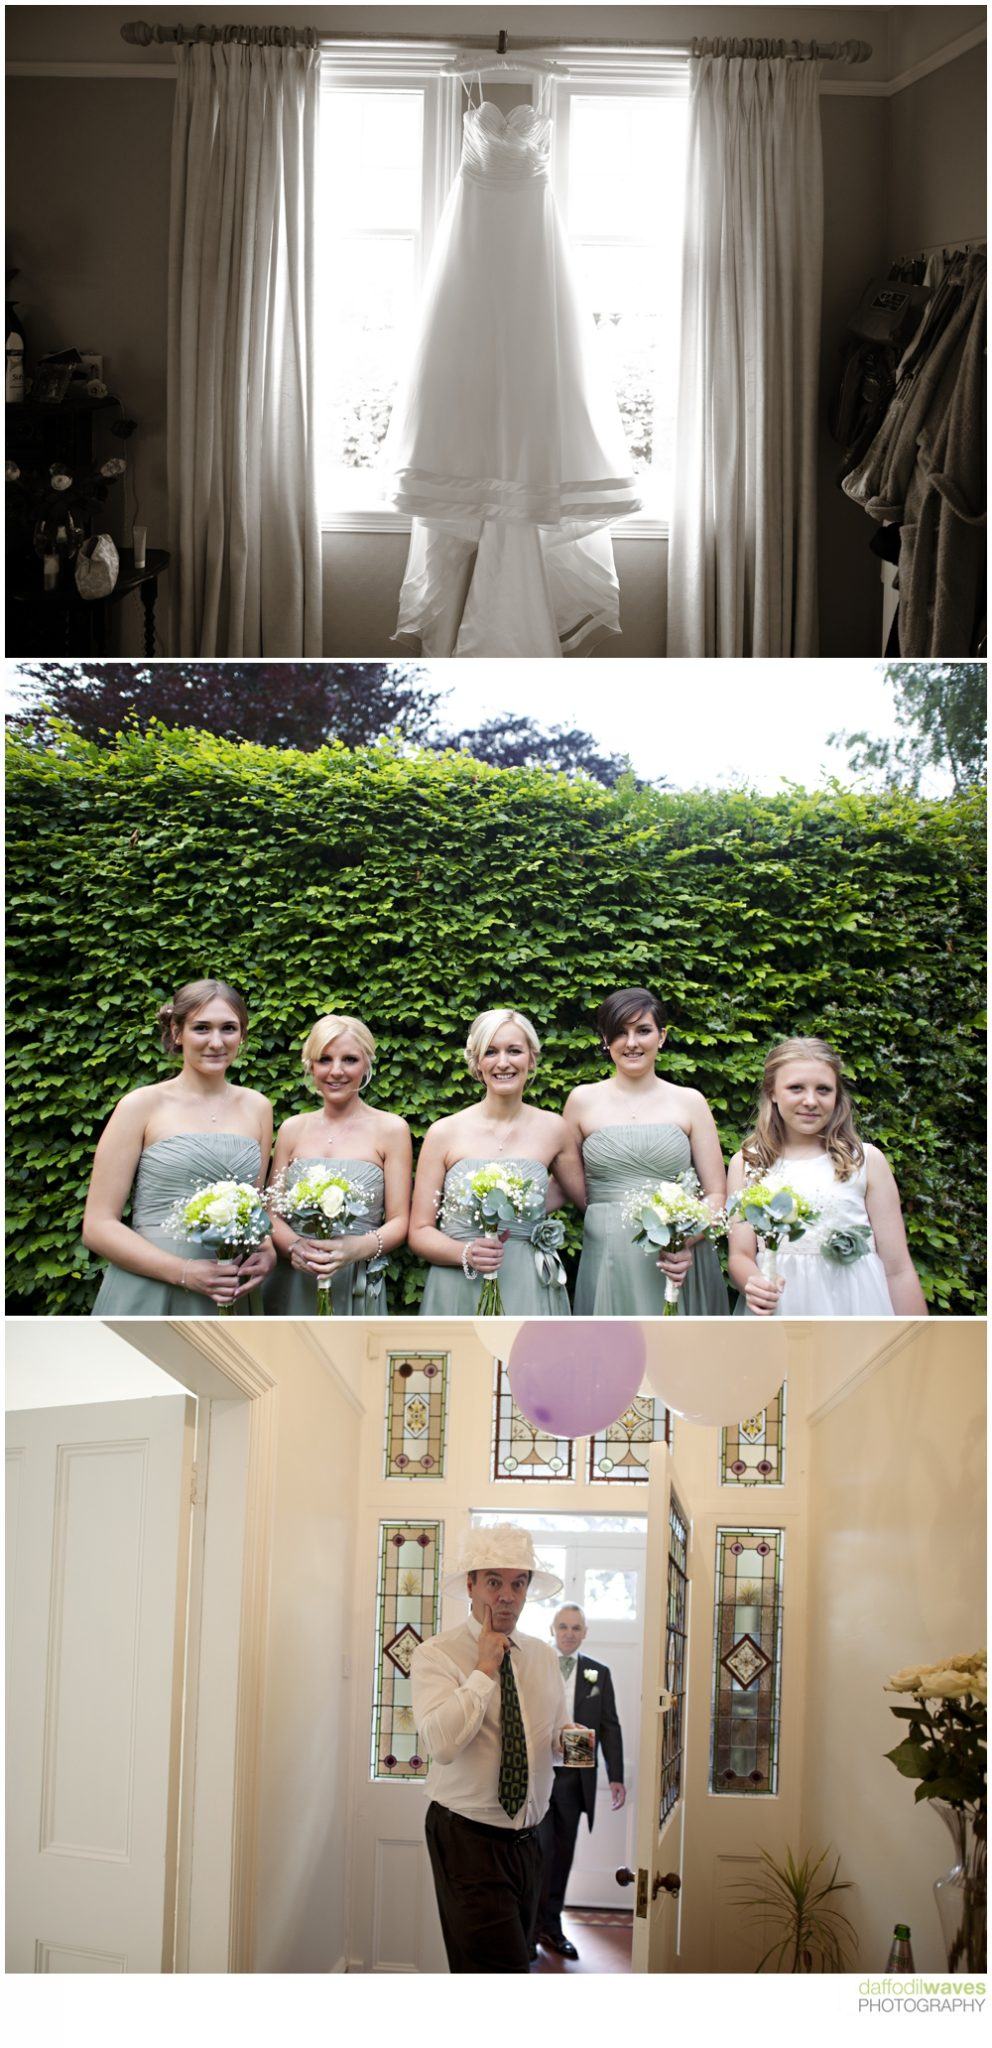 Solihull Wedding - Amy and Will - Daffodil Waves Photography1